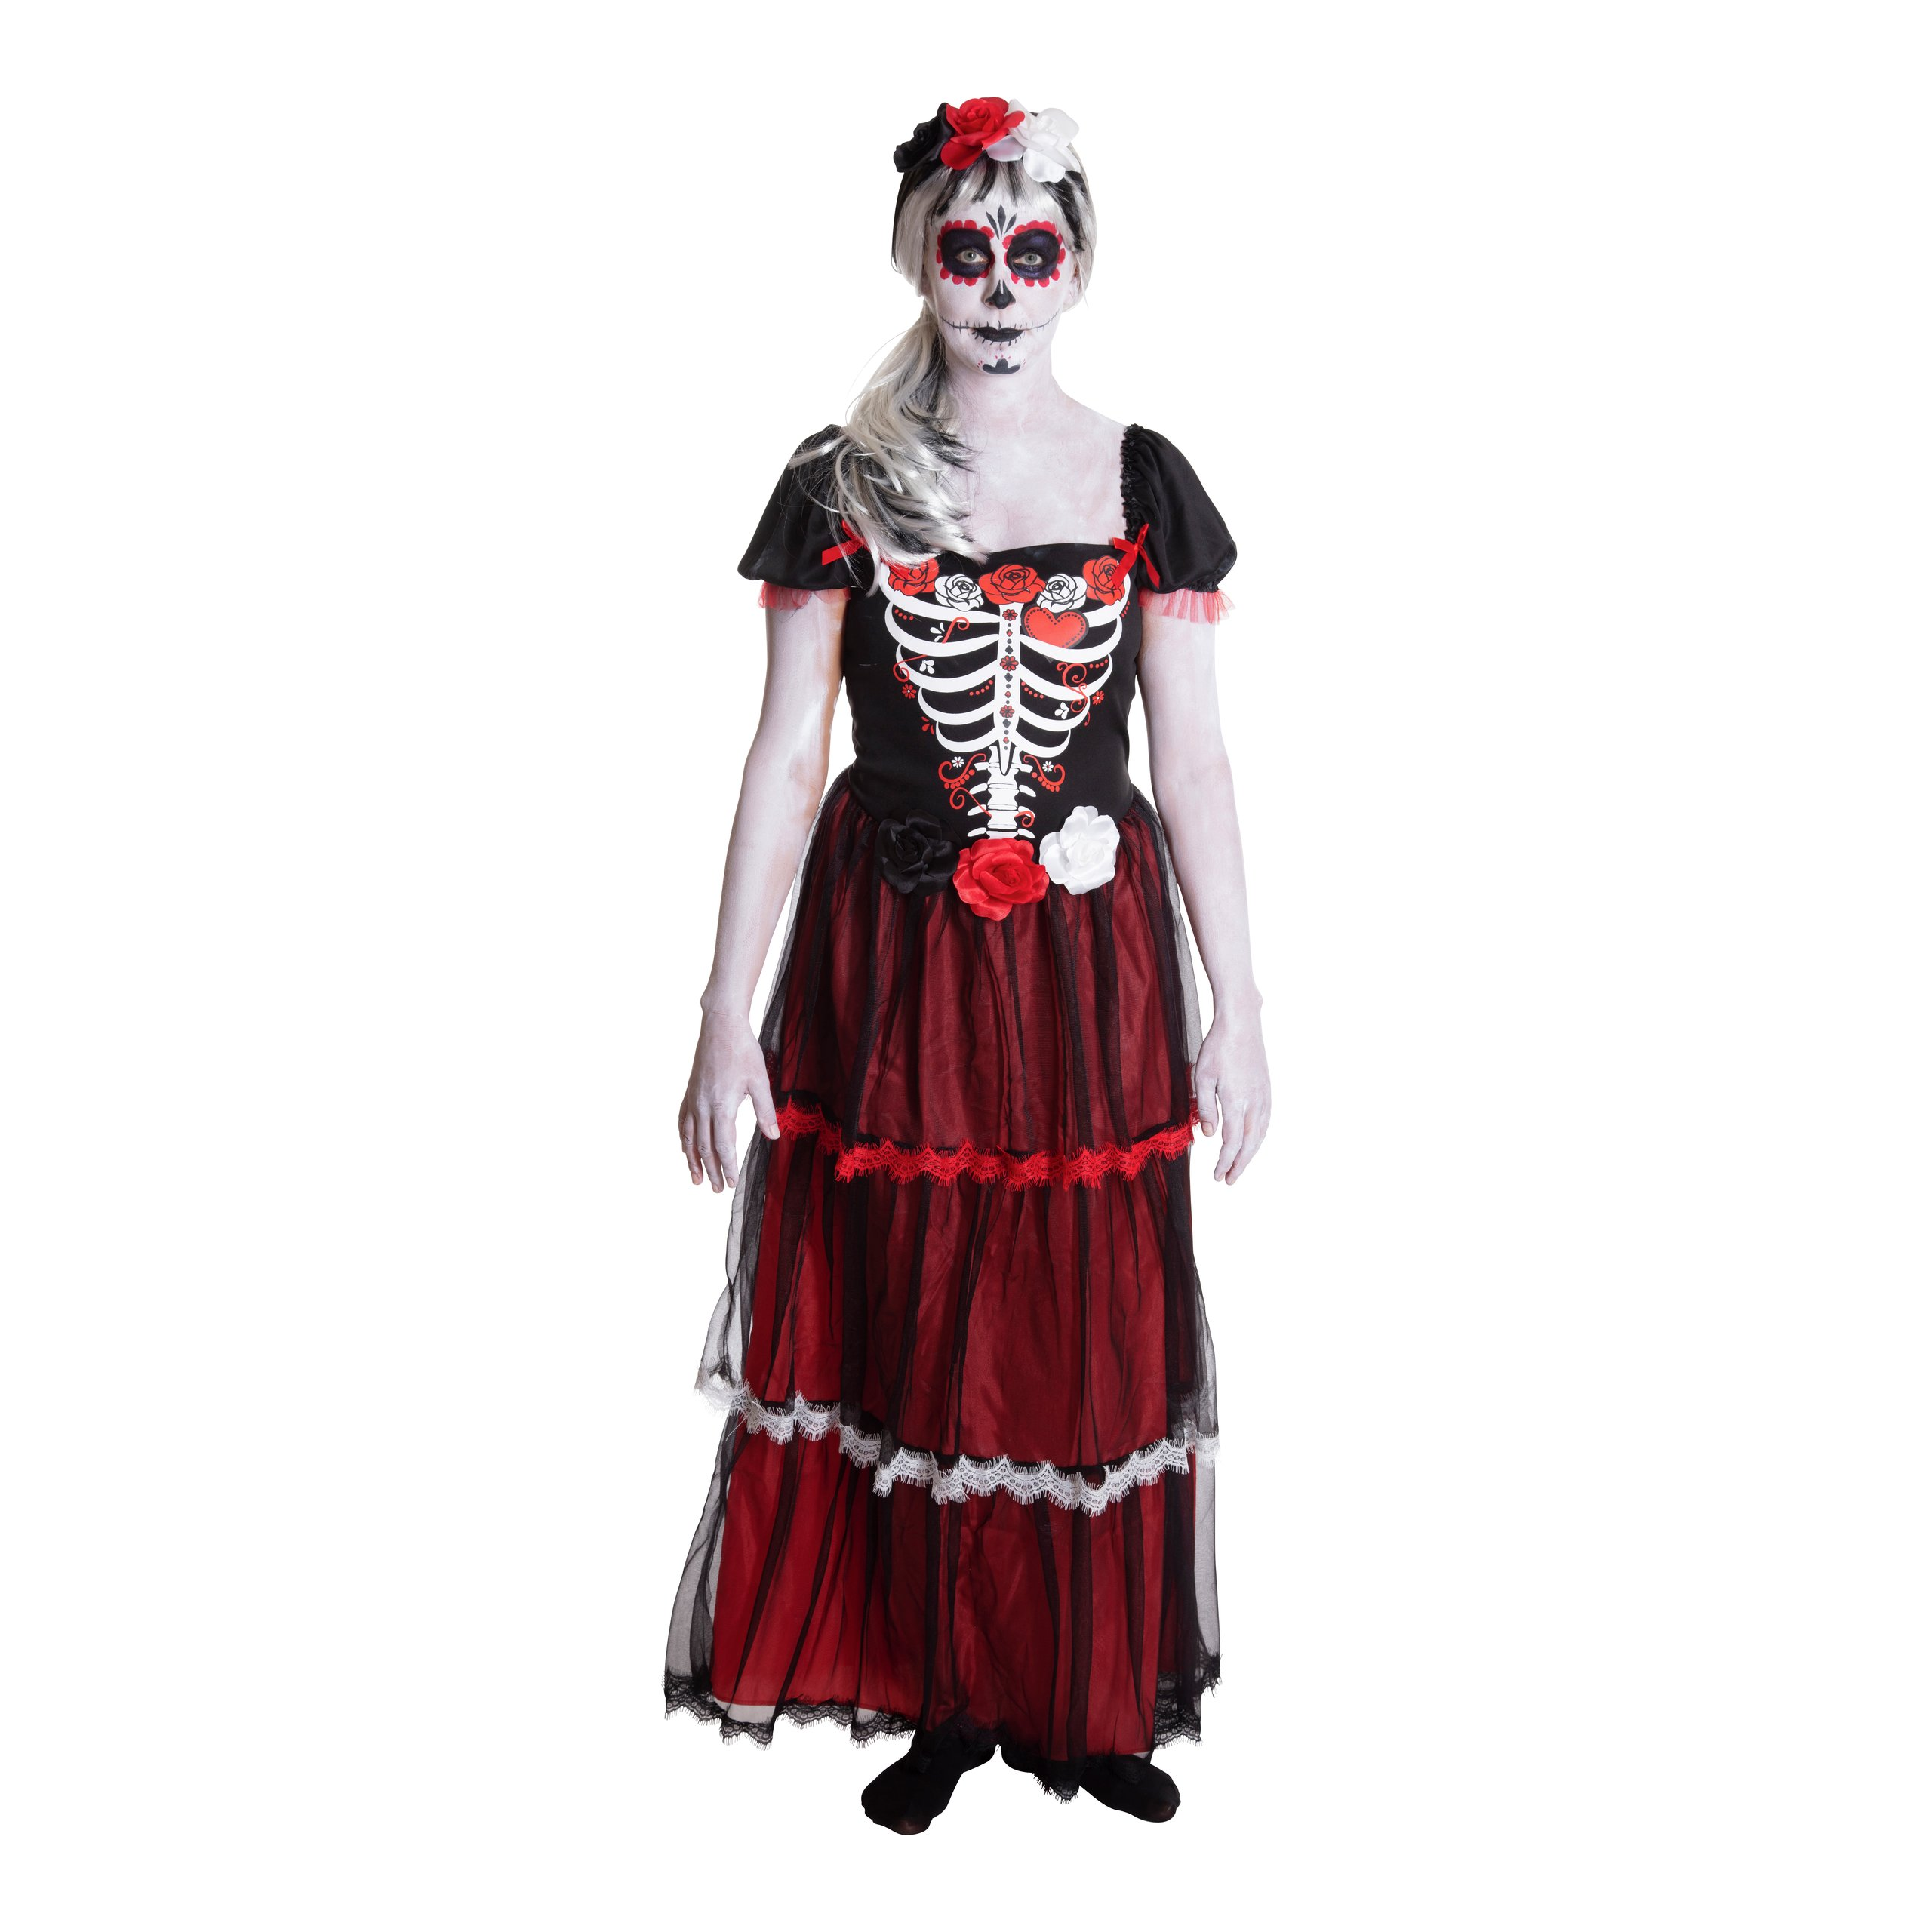 KOSTYME DAME DARLING OF THE DEAD LARGE-102557